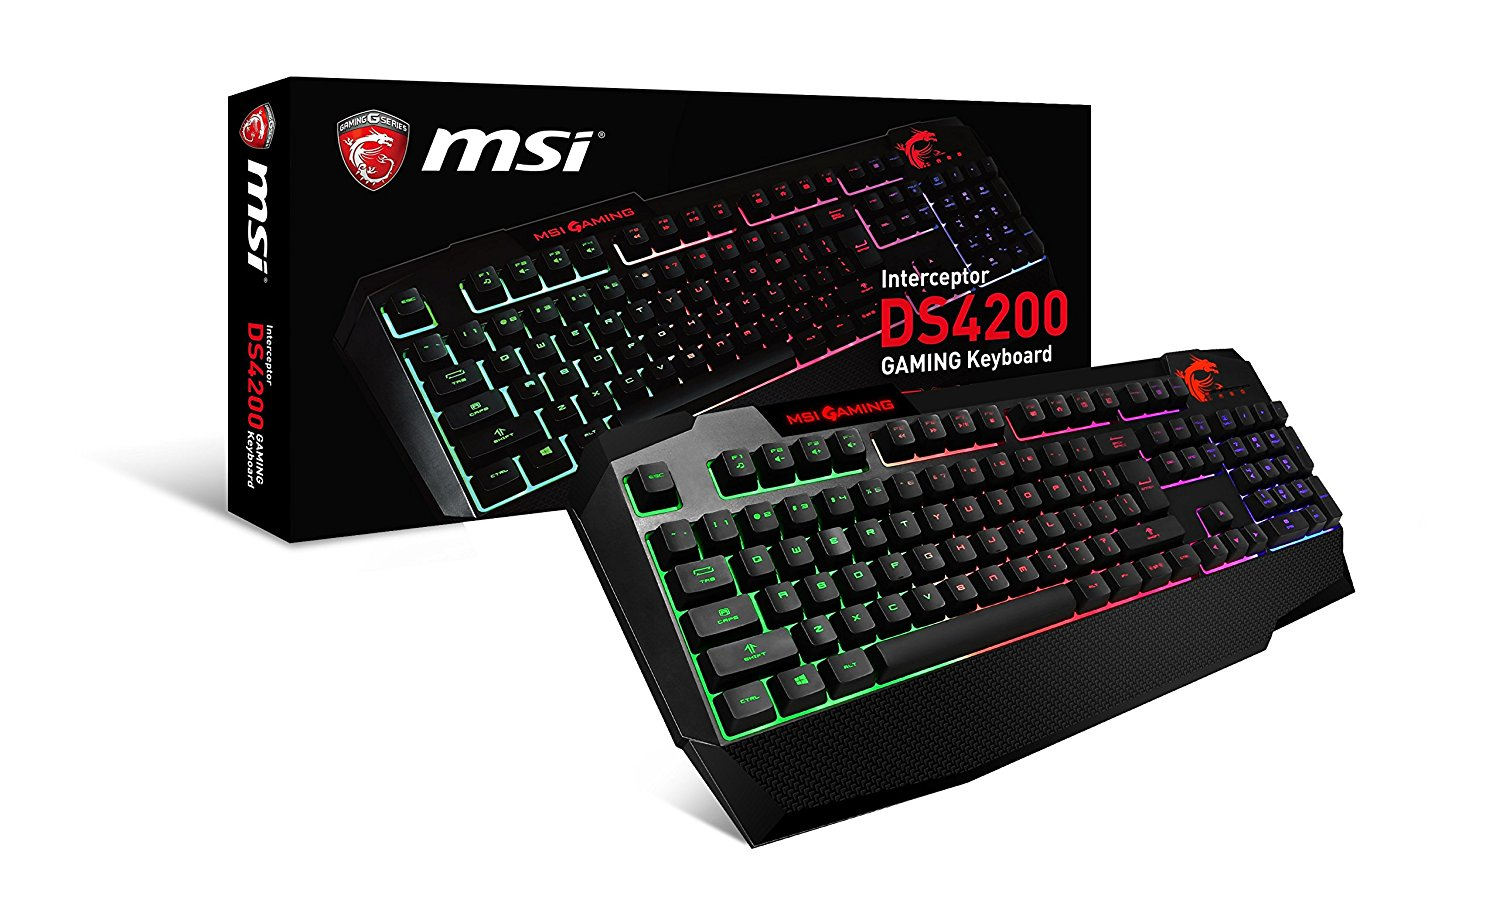 a021367fd44 MSI-Interceptor-DS4200-Gaming-Keyboard-Anti-Ghosting-Backlit -Ergonomic-Design-Multi-Color.jpg